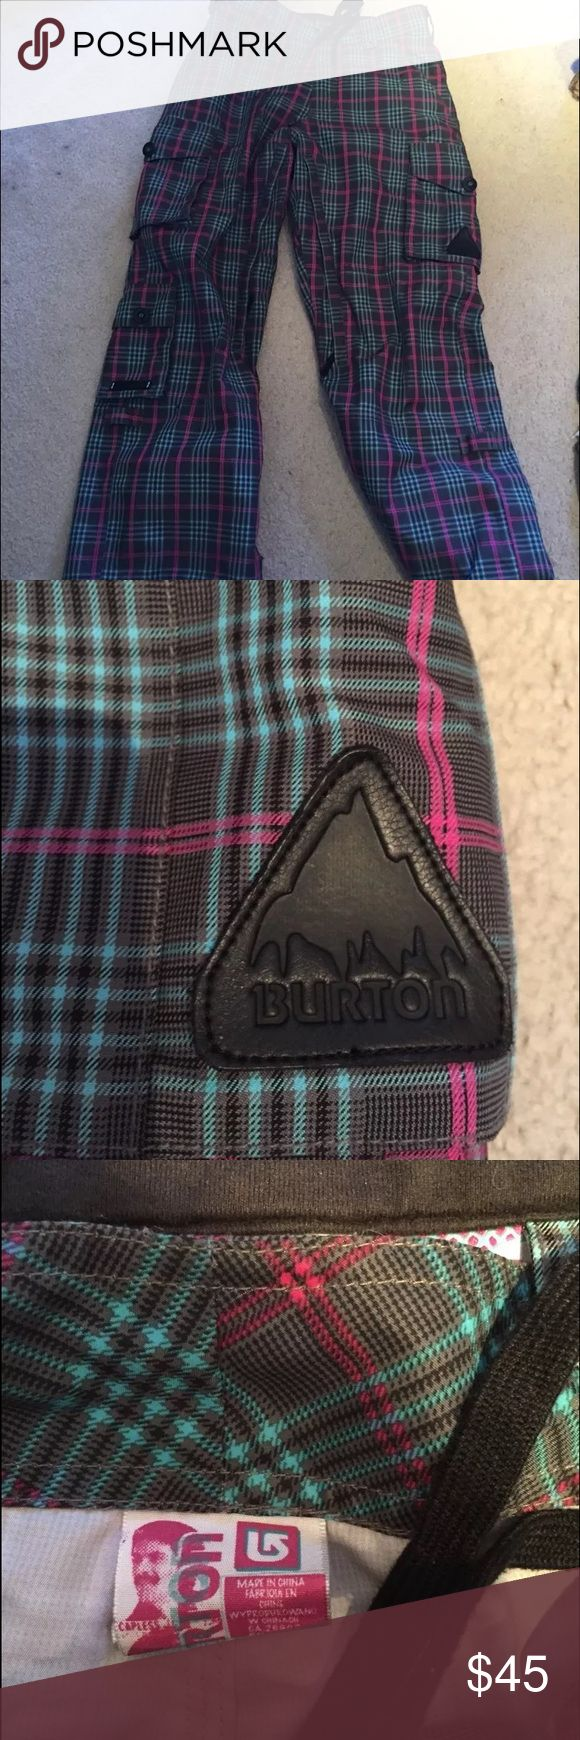 Burton snowboard pants Women's burton snowboard pants with pink and blue plaid design over brown pants. Great fit and really cute pants great for snowboarding or even just a snow day Burton Pants